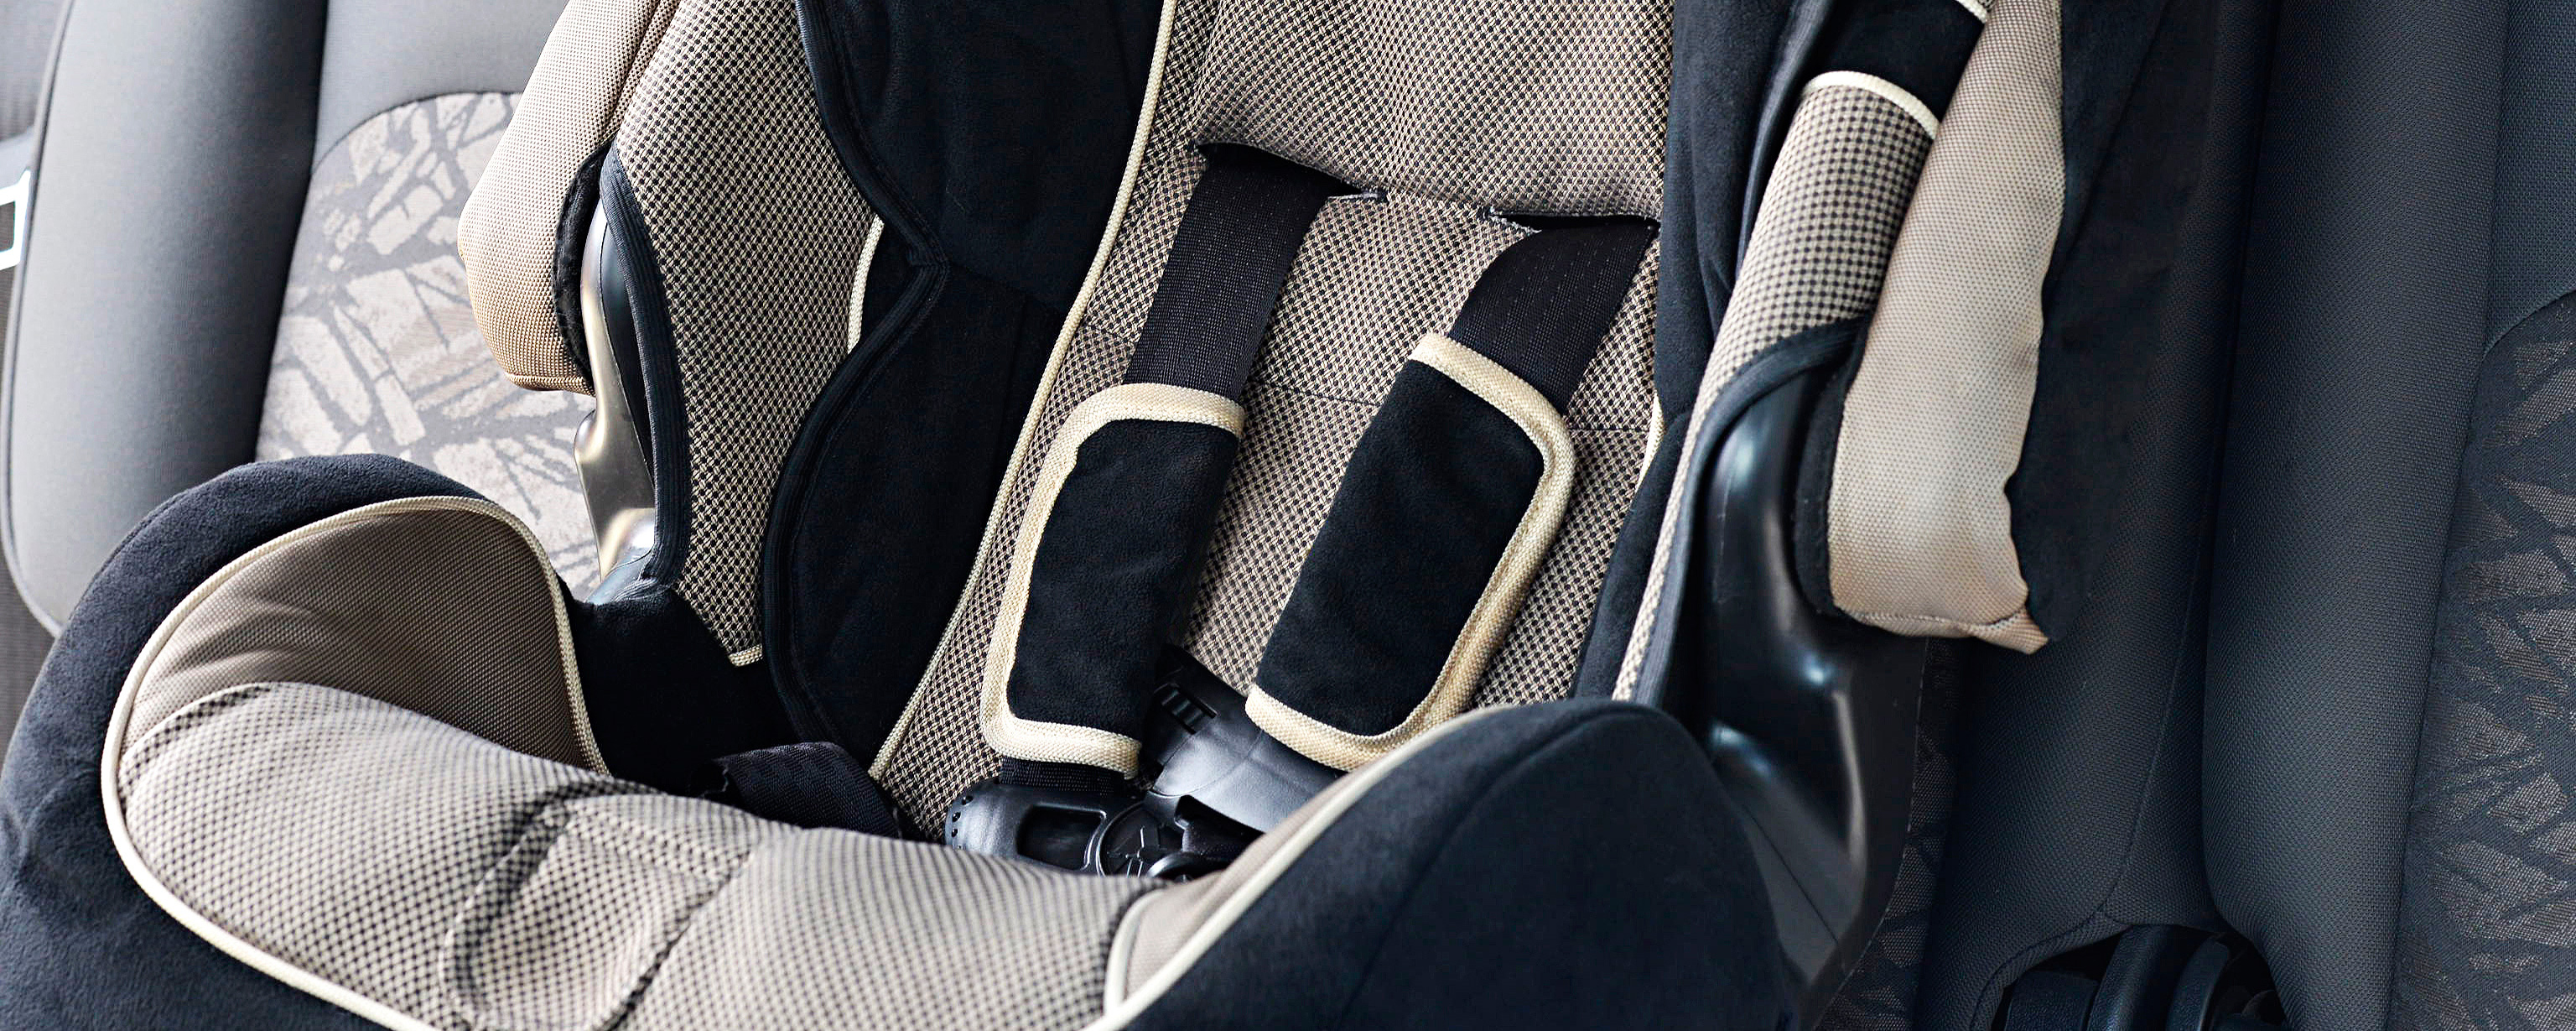 Governor Cuomo Announces Results of Child Car Seat Safety Checks ...